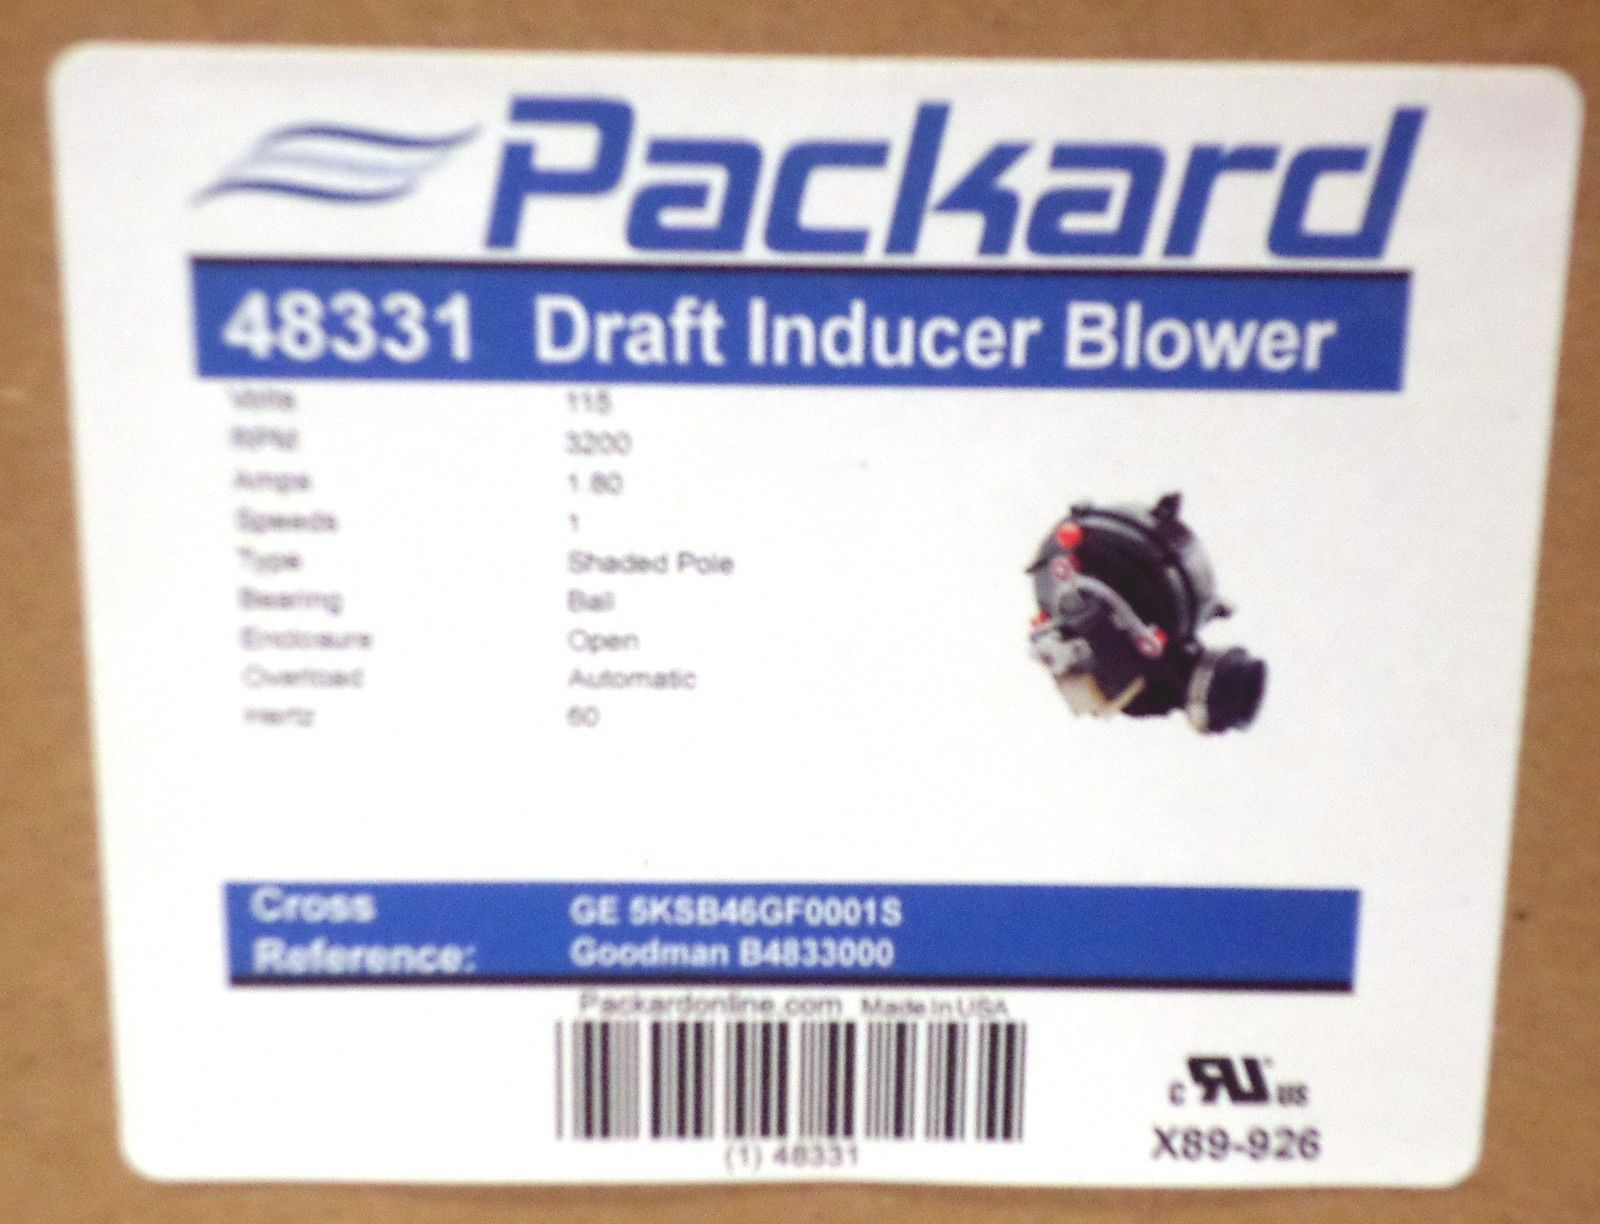 Packard 48331 induced draft furnace blower115 volt walmart publicscrutiny Choice Image